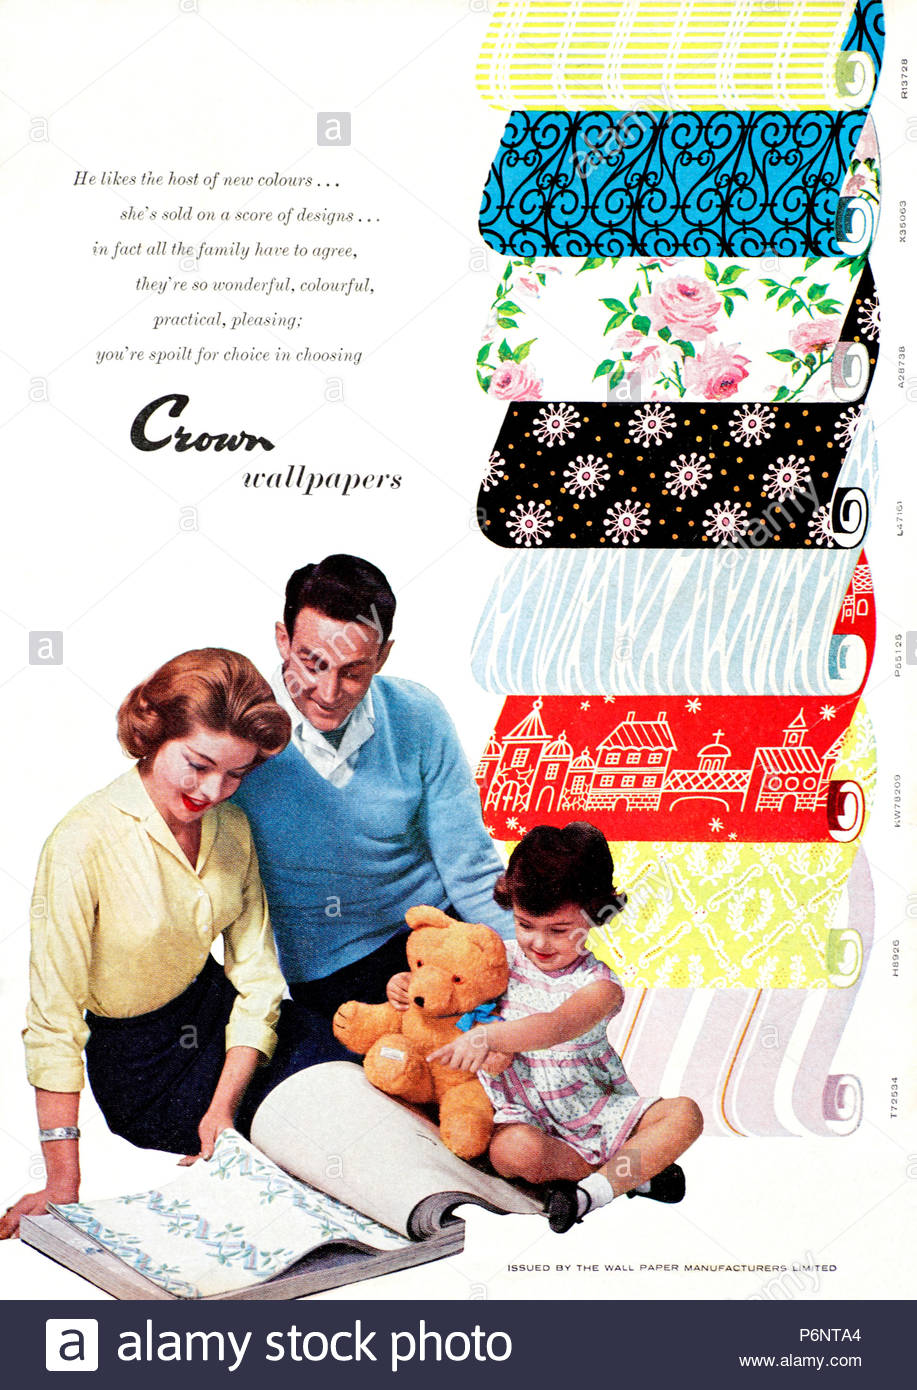 Vintage advertising for Crown Wallpaper 1950s - Stock Image